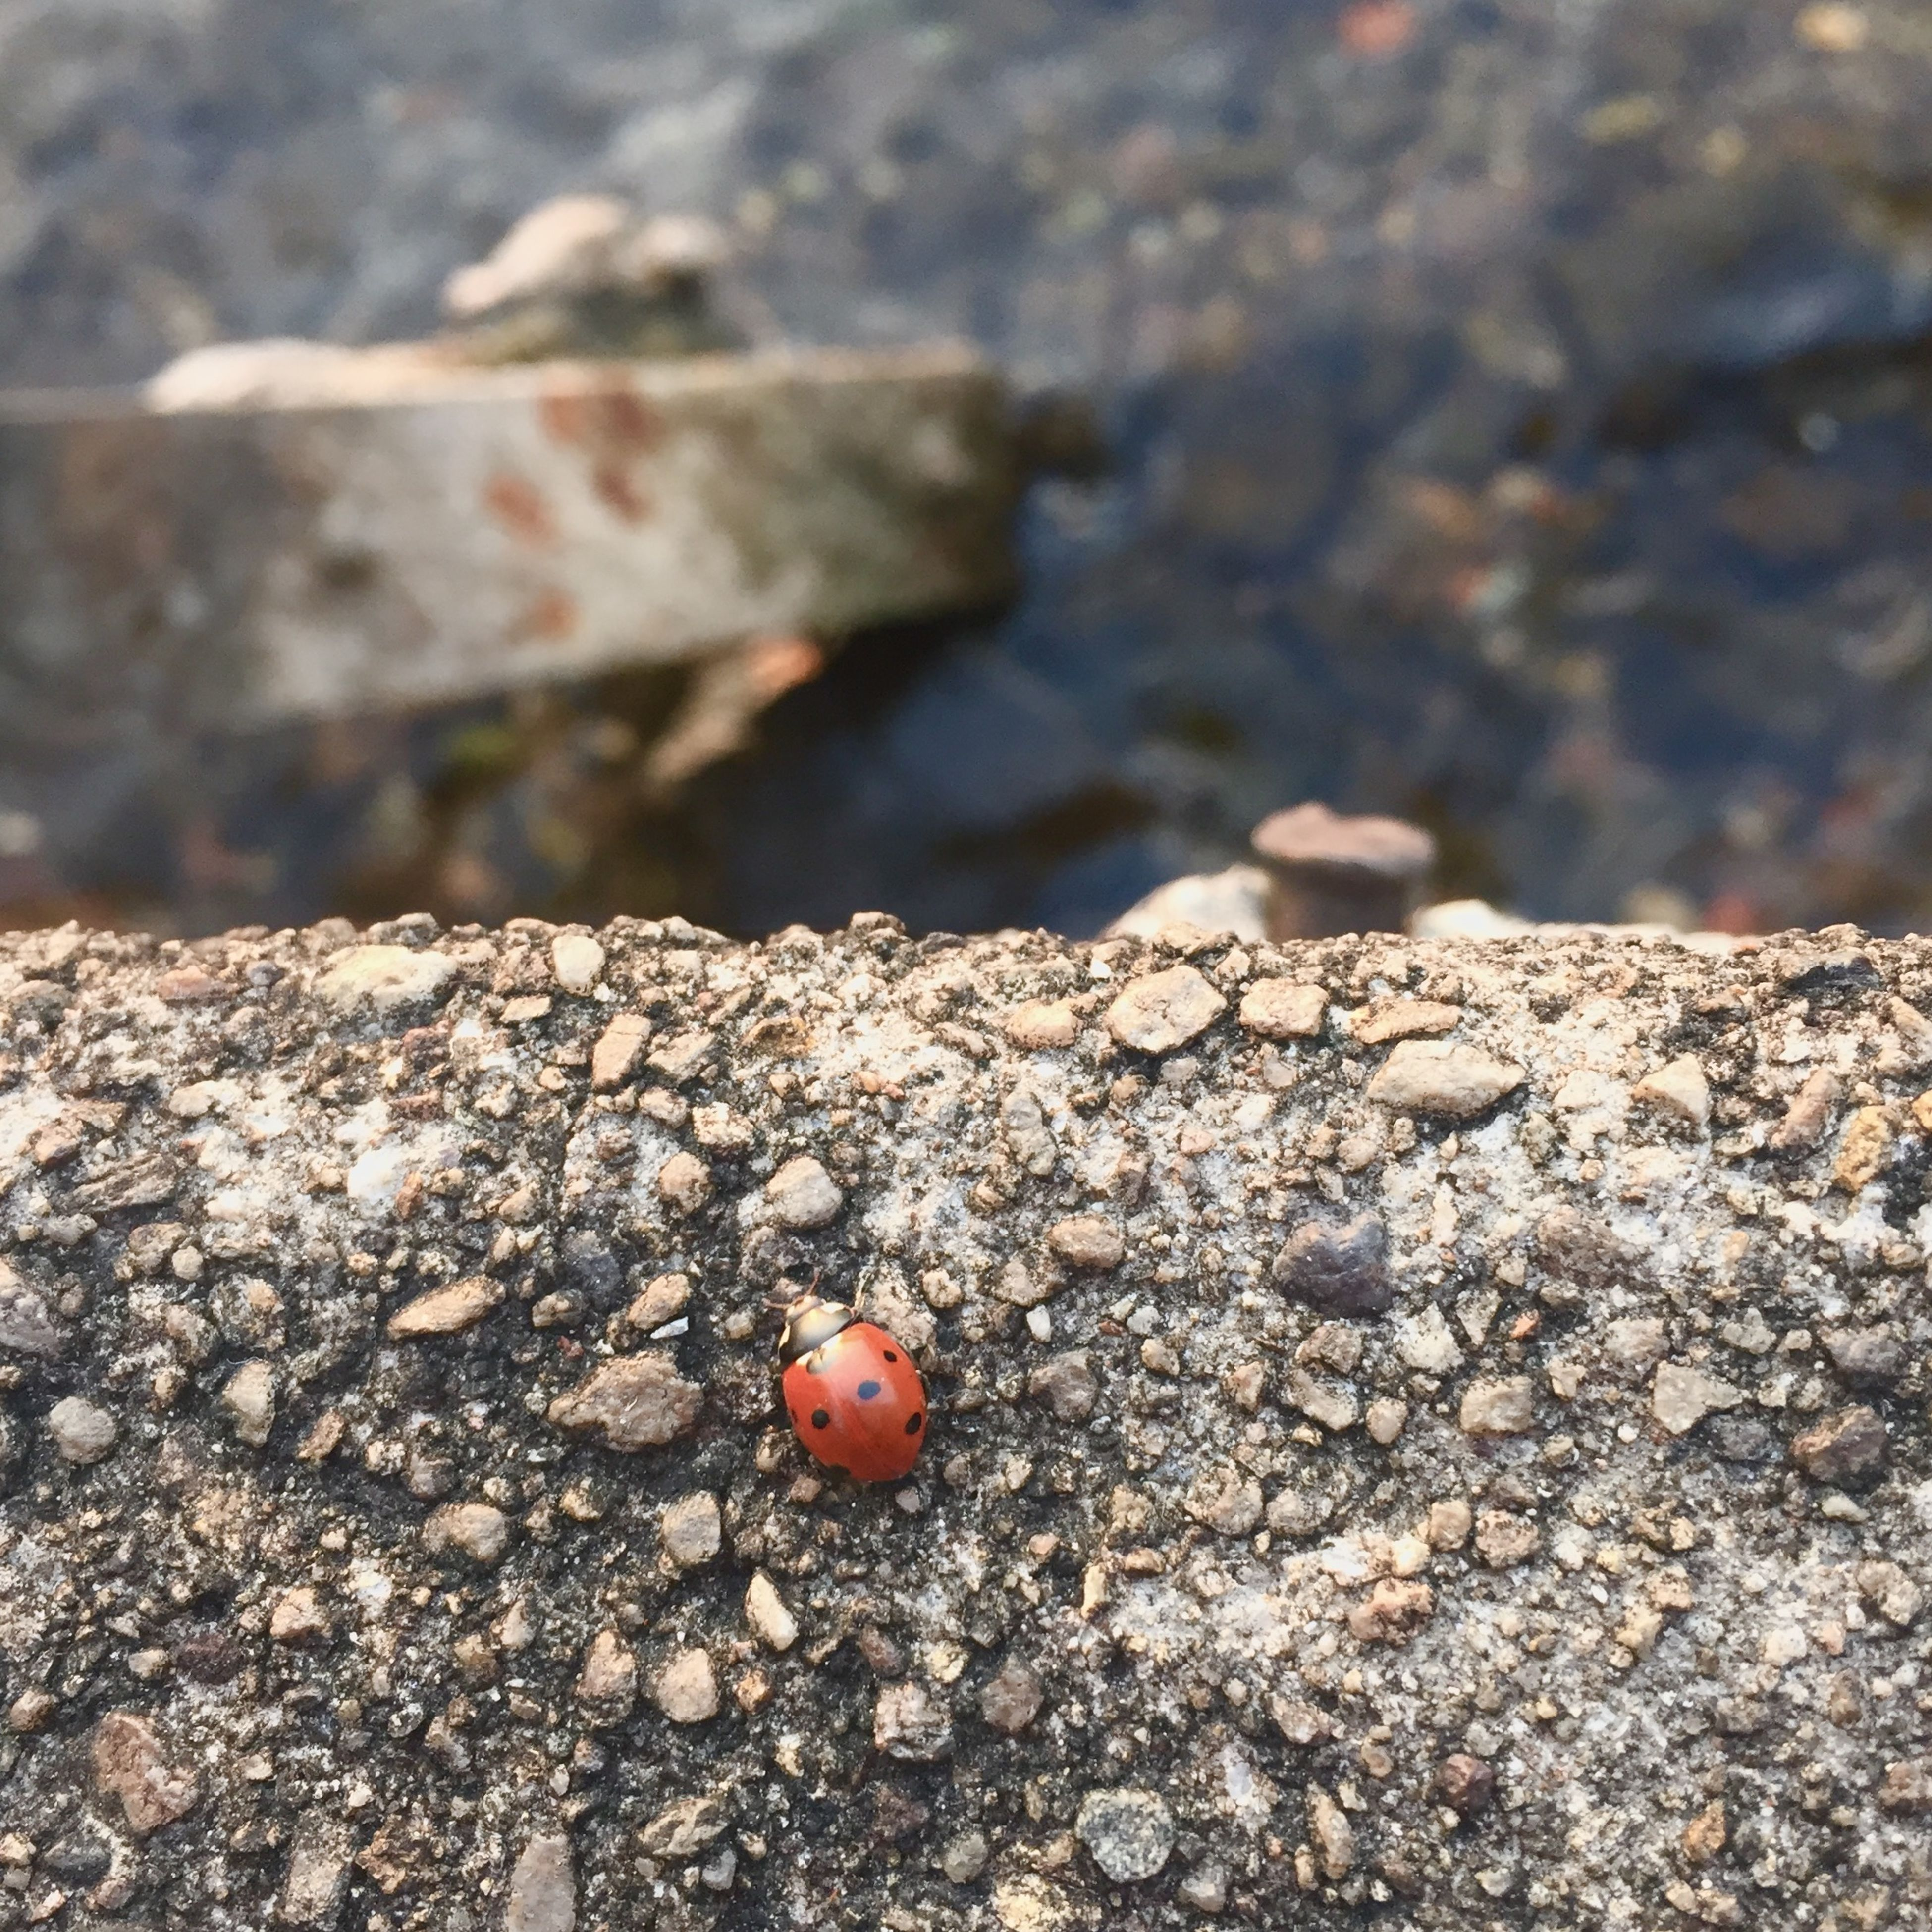 close-up, red, rock - object, focus on foreground, textured, selective focus, stone - object, fruit, nature, food and drink, outdoors, day, no people, high angle view, food, sunlight, ground, healthy eating, rough, wood - material